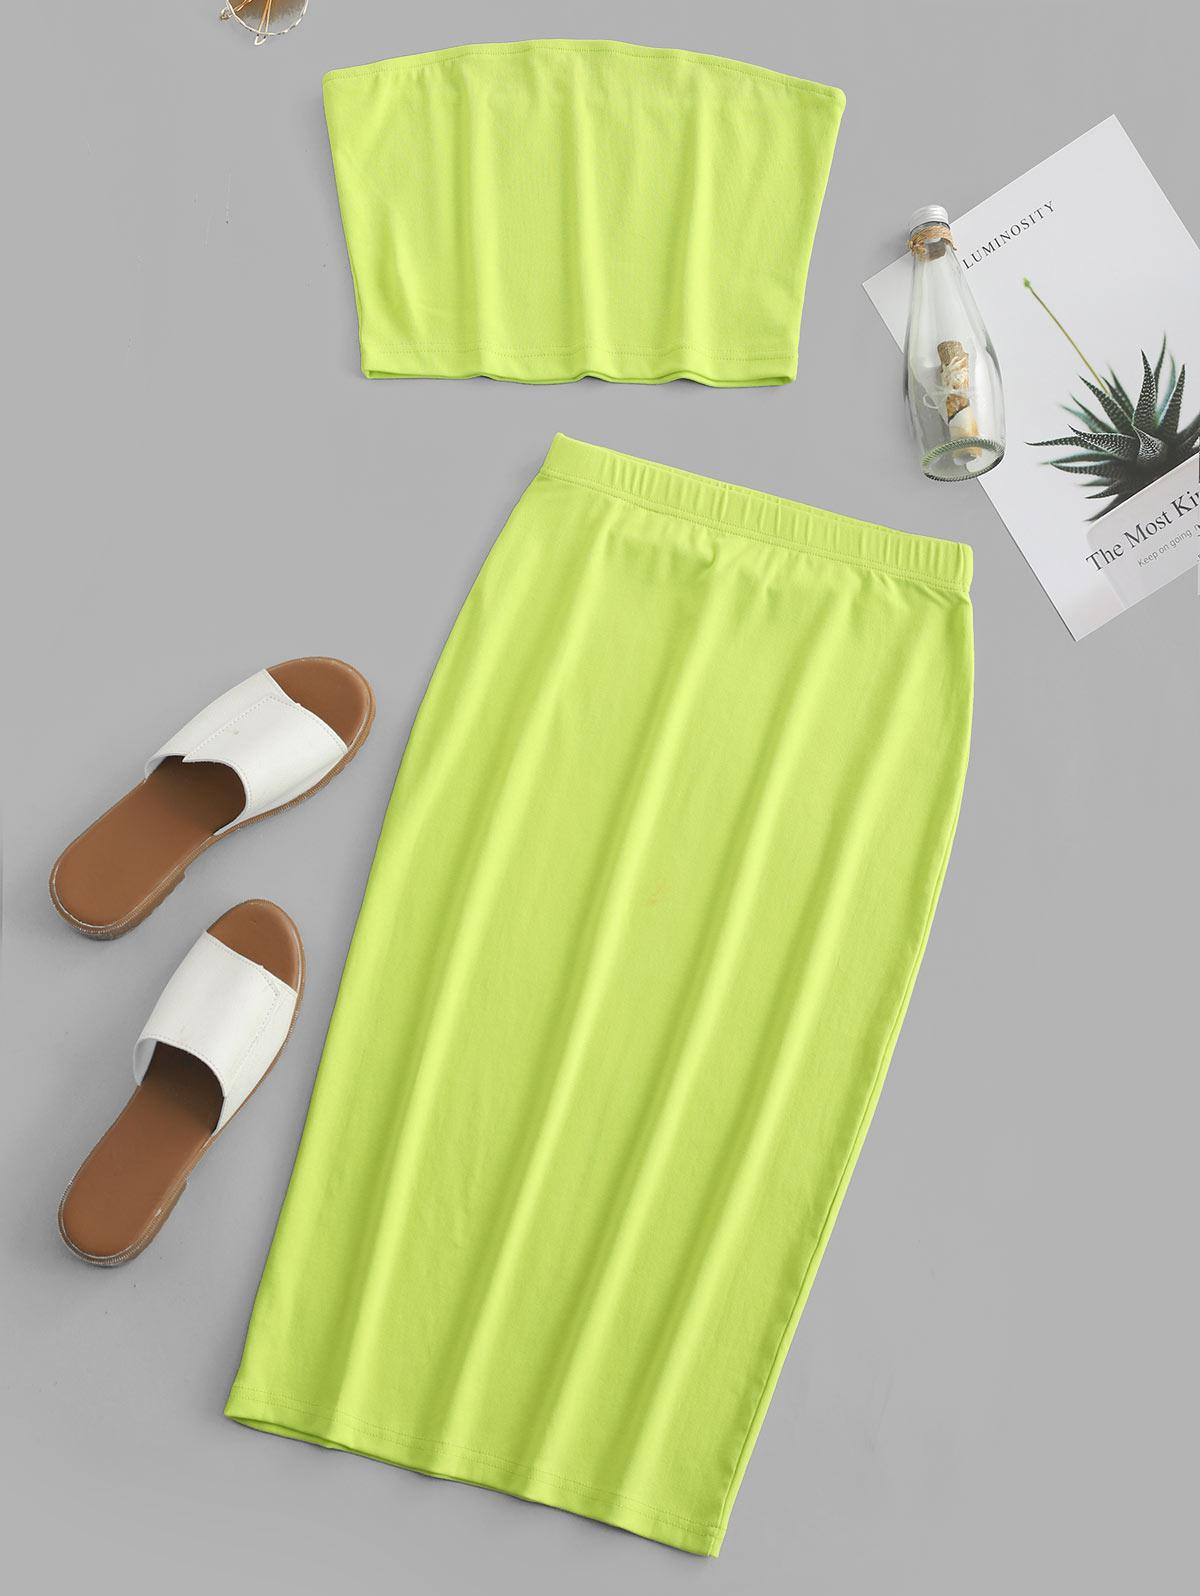 ZAFUL Plain Neon Bandeau Top And Skirt Set, Tea green